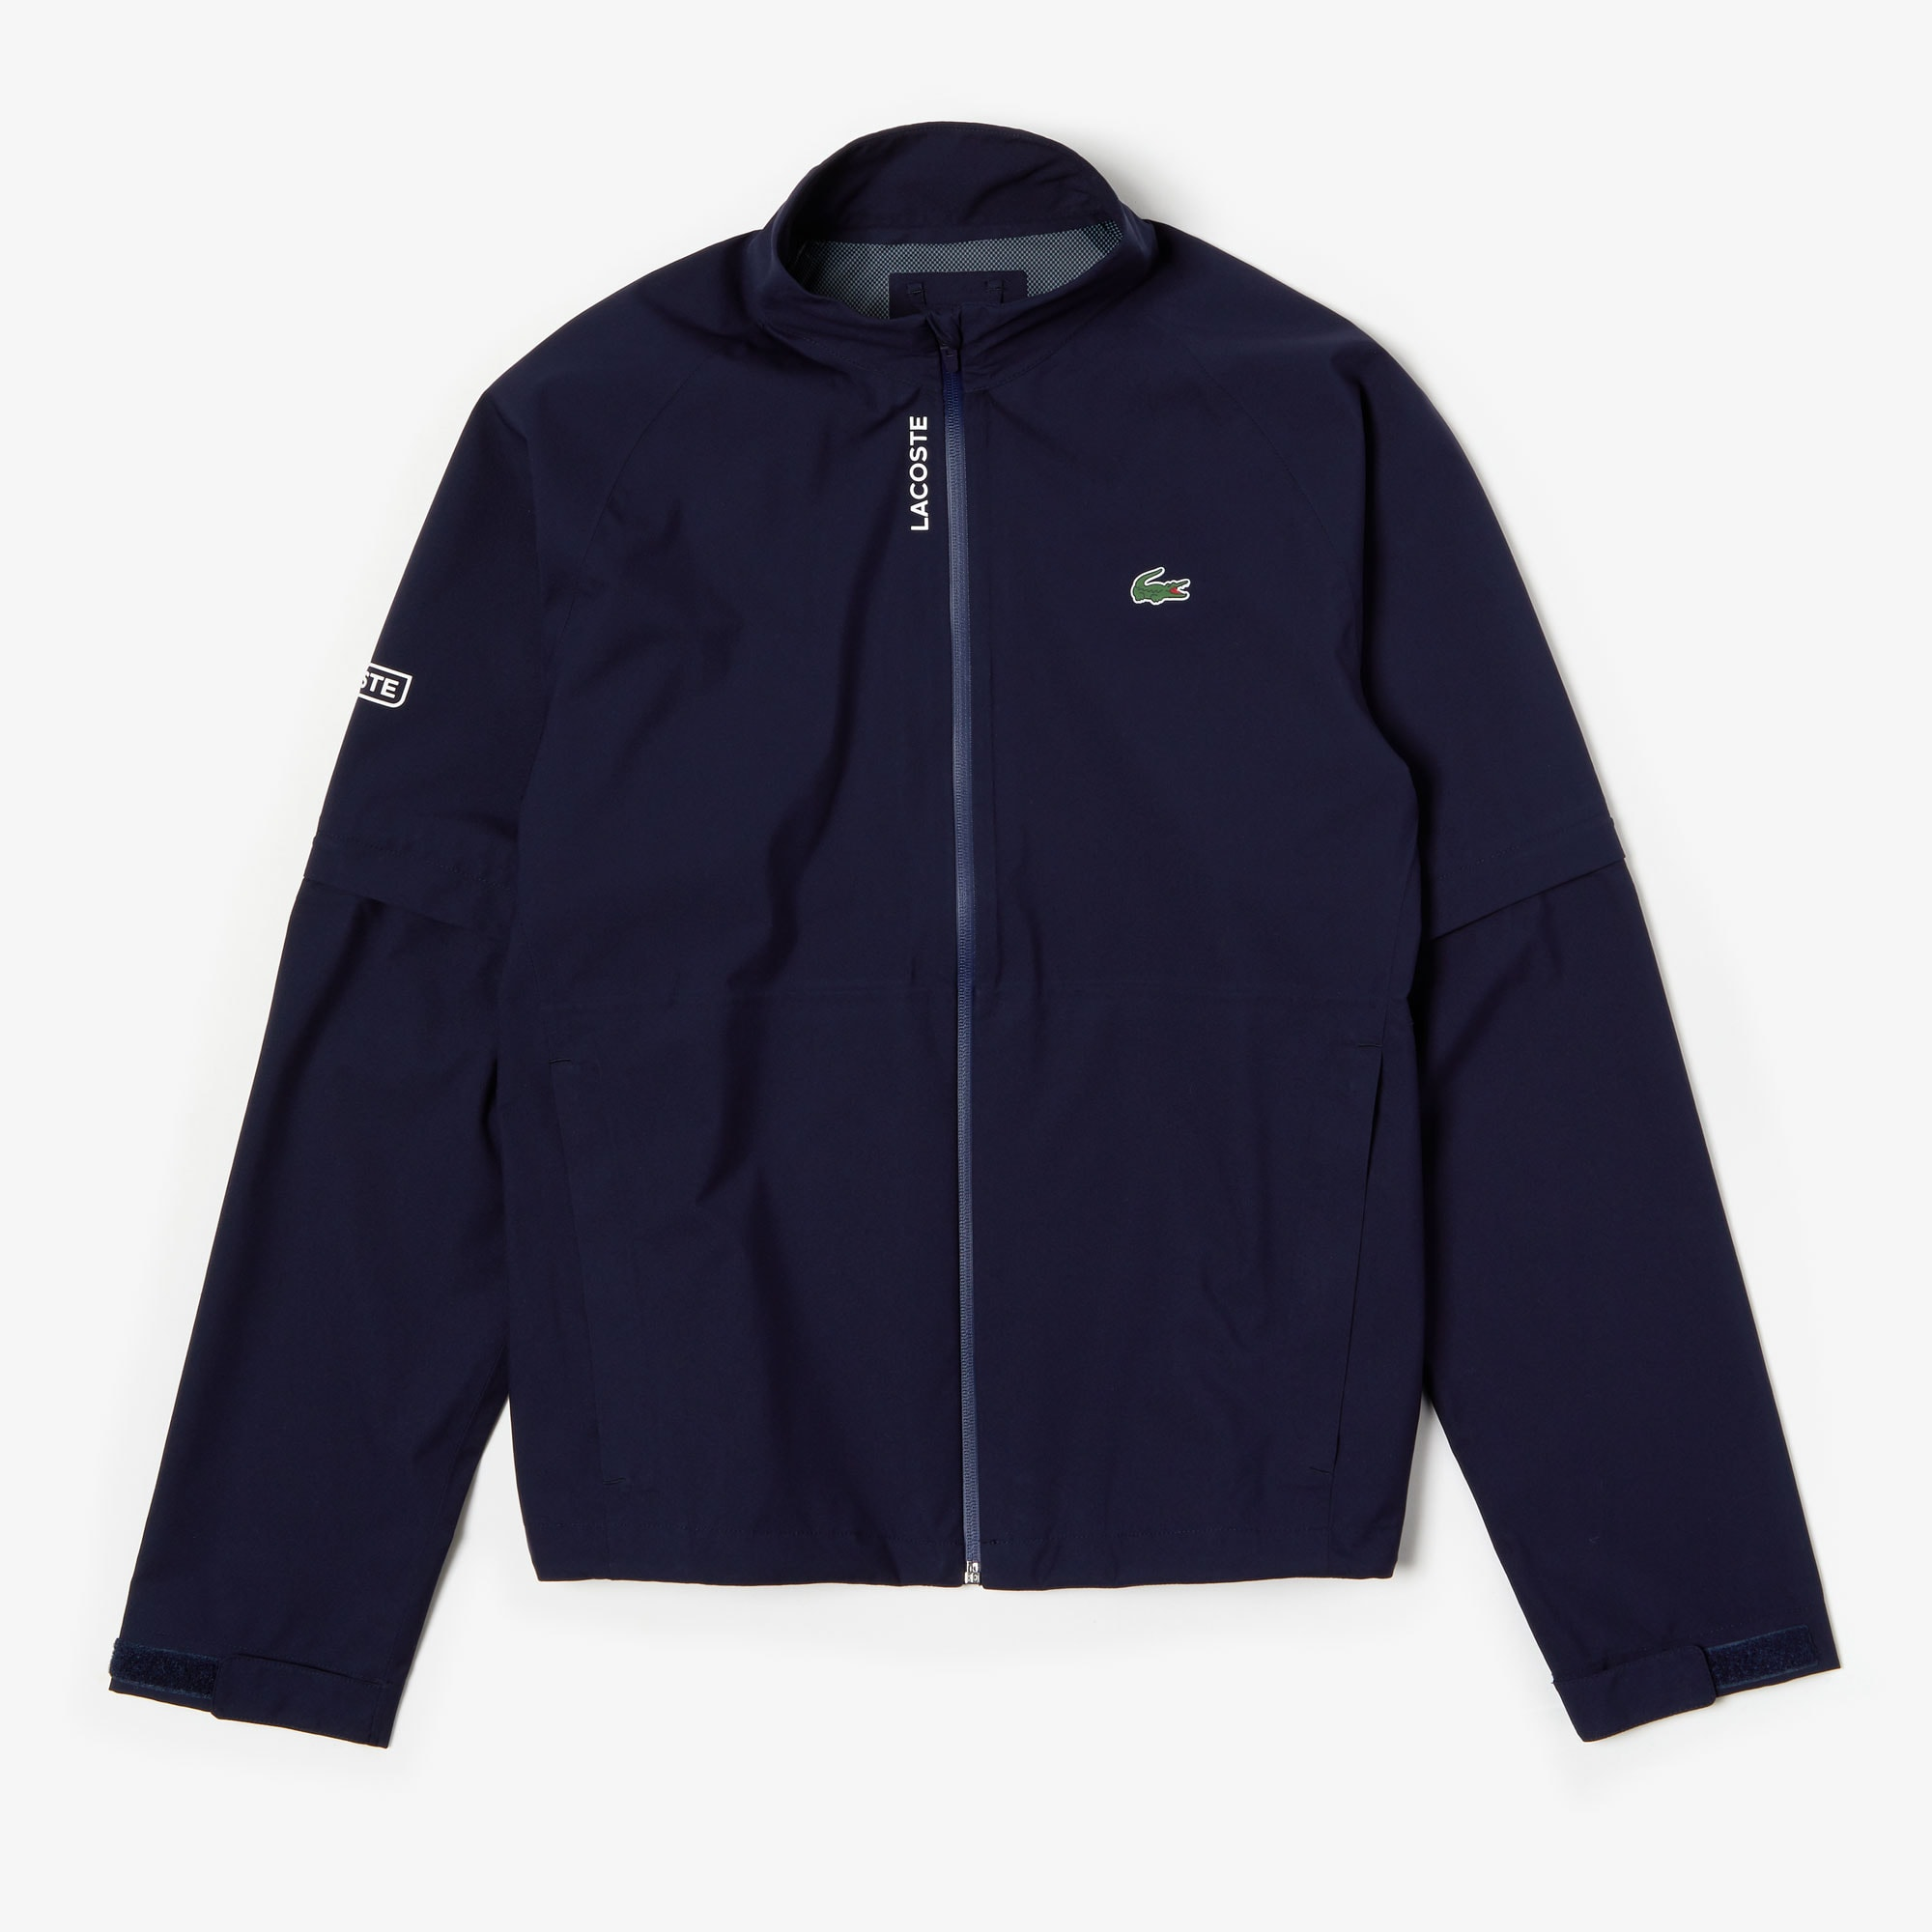 Men's Lacoste SPORT Technical Zip Golf Rain Jacket